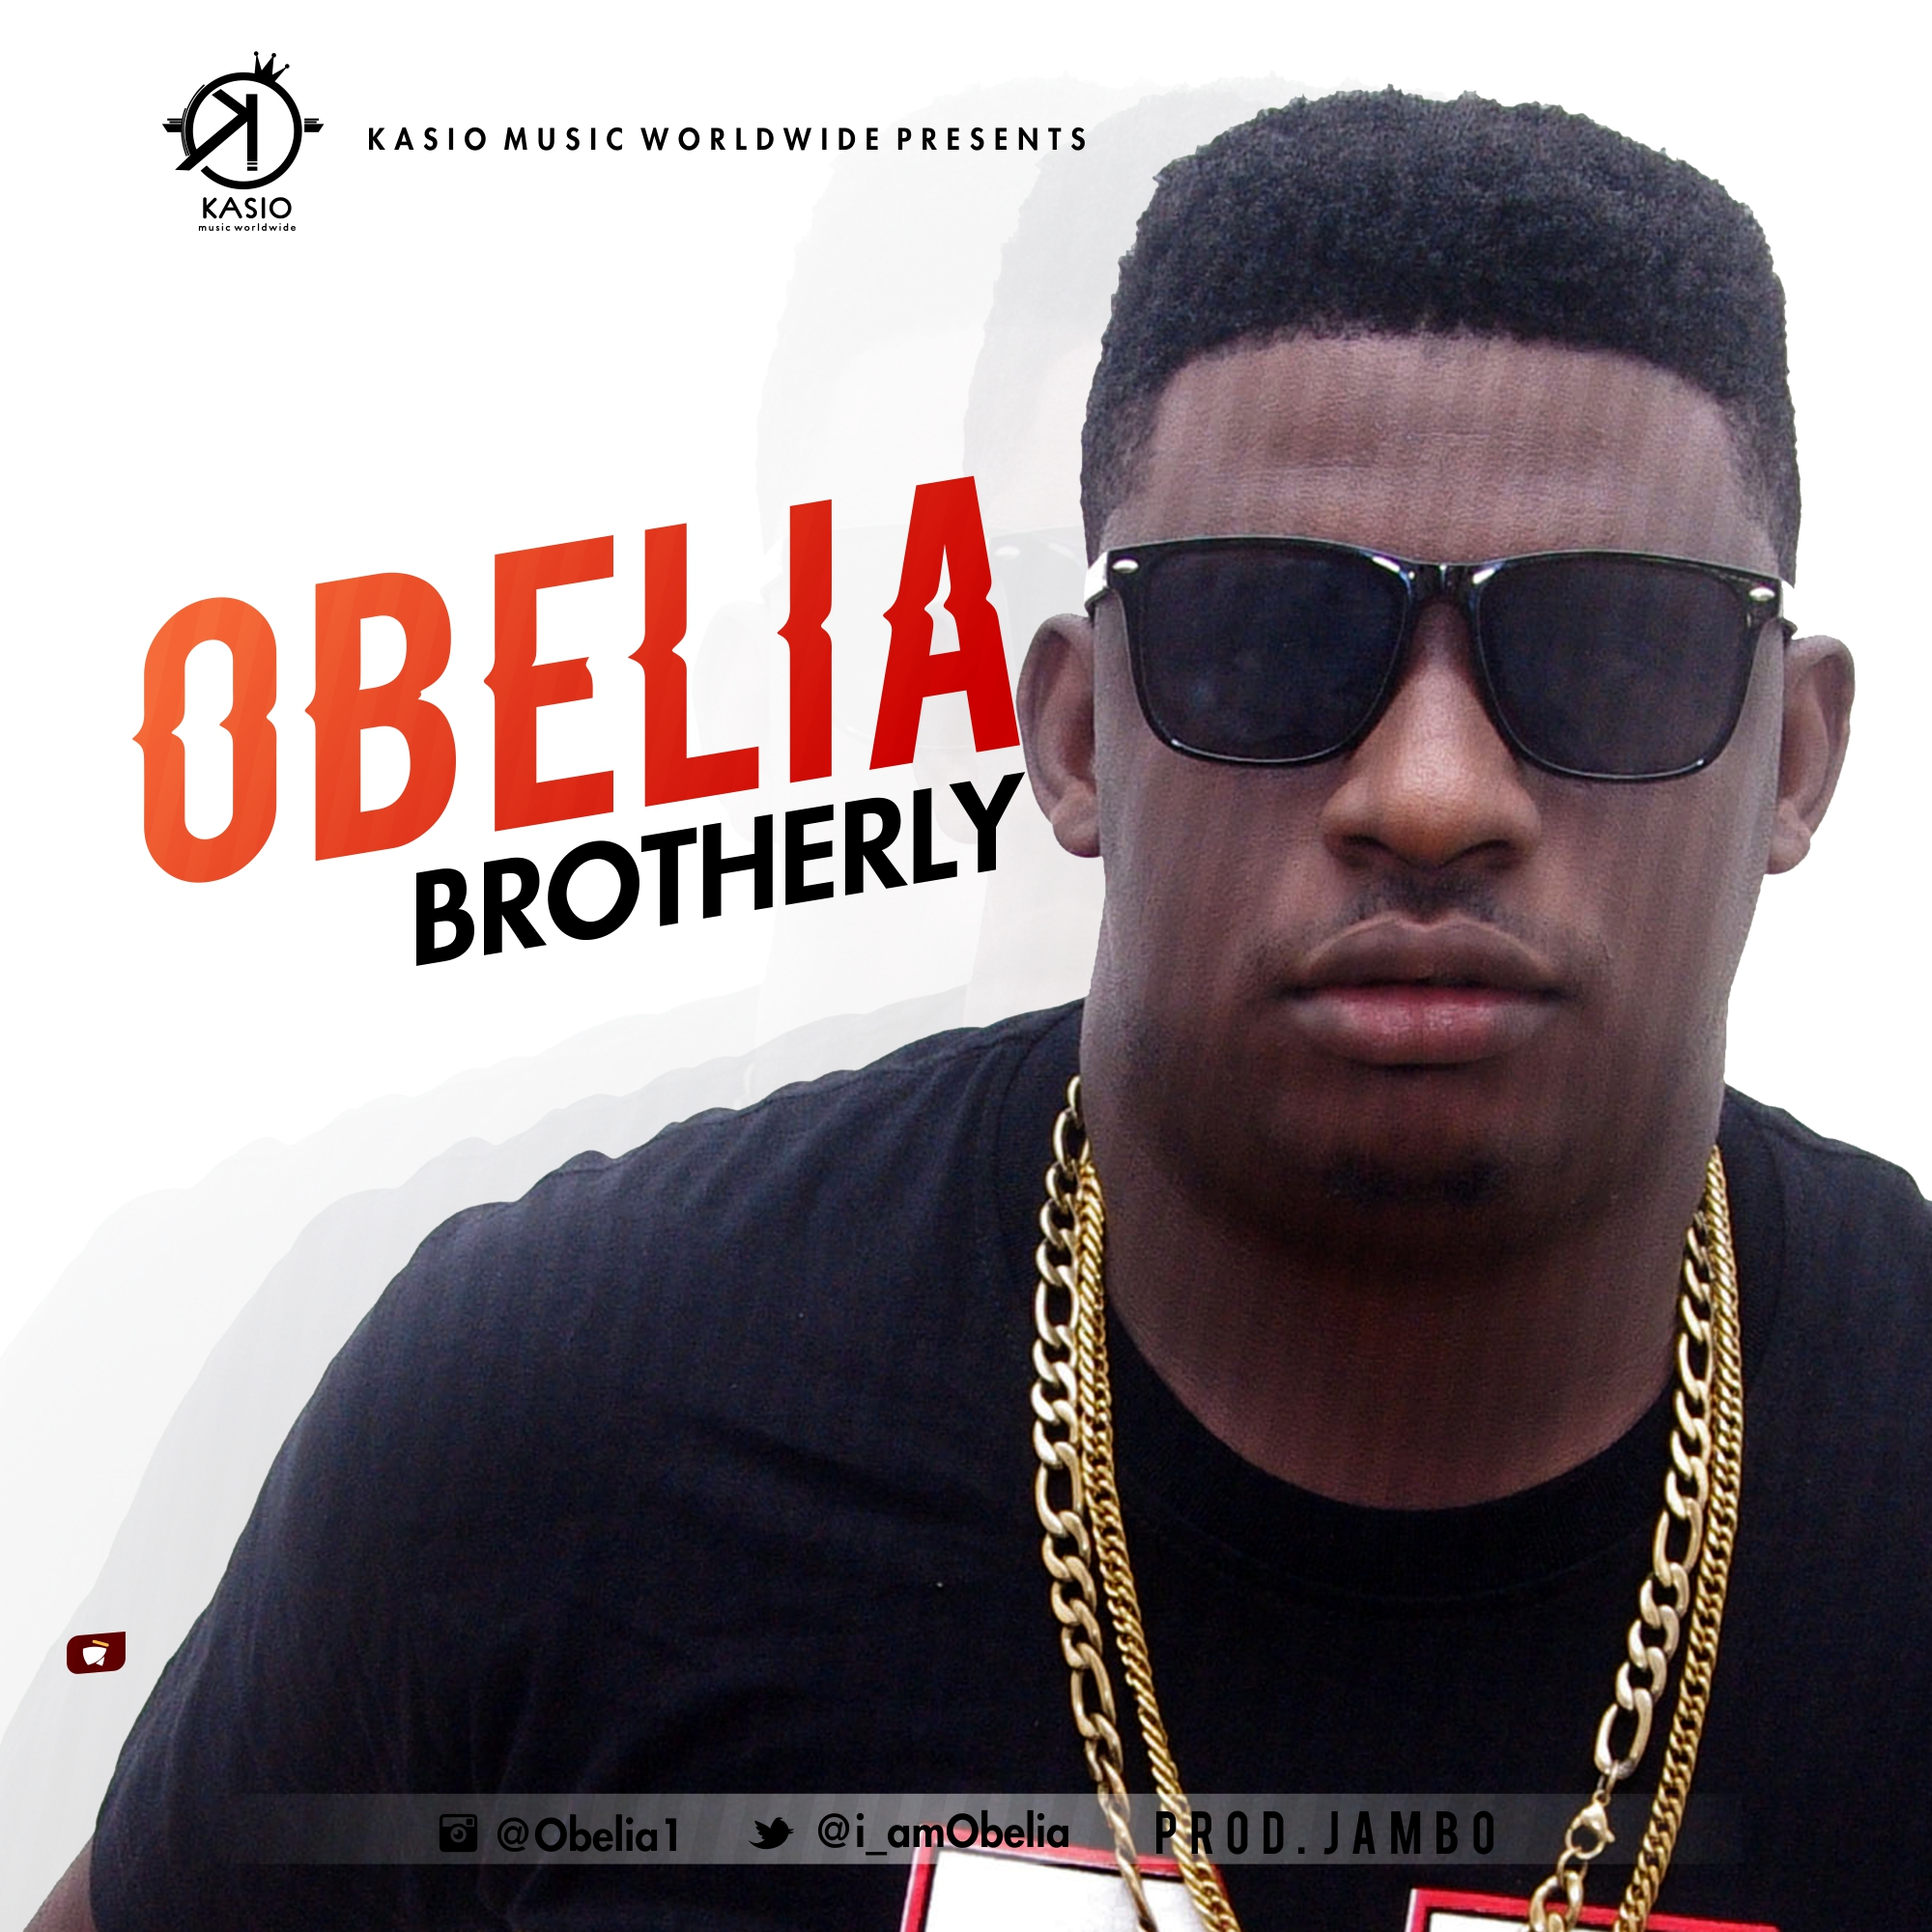 Obelia – Brotherly